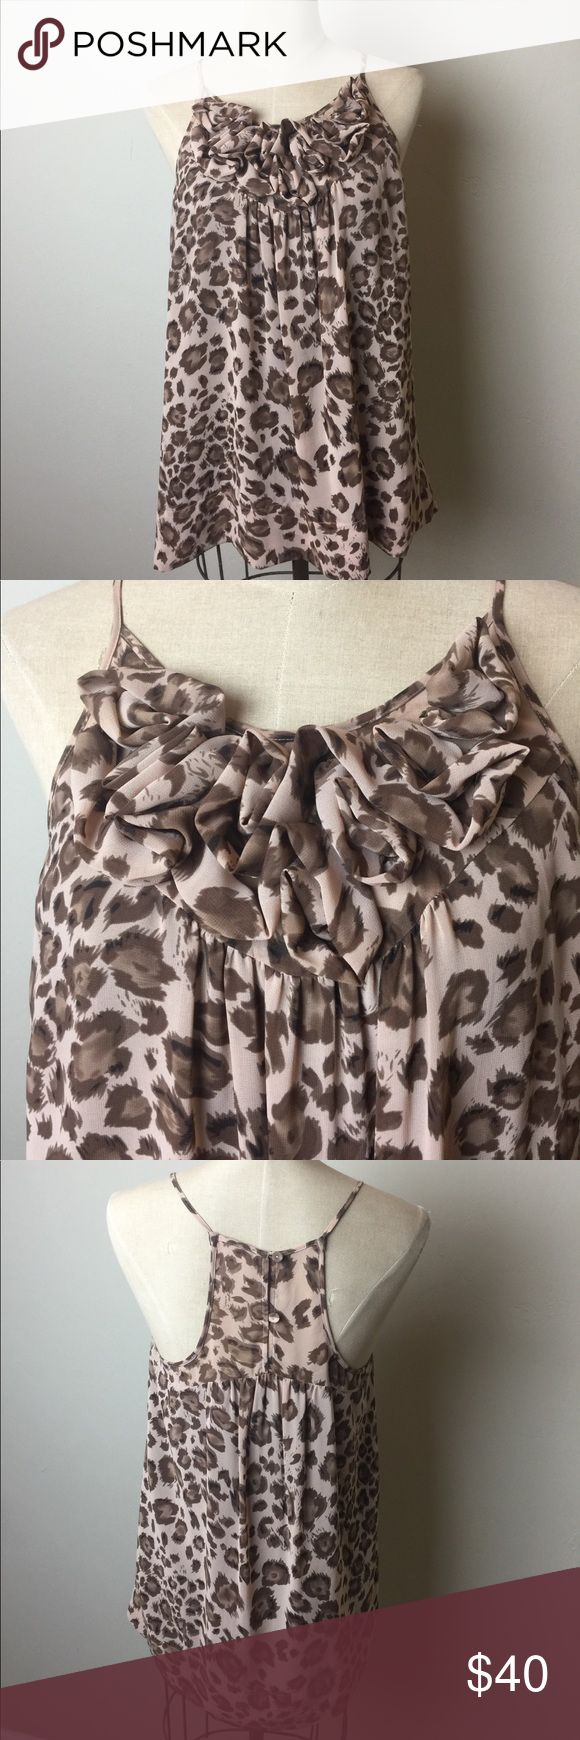 Rebecca Taylor ruffle front animal print top Love the leopard print!  Pretty gathered ruffle detail at neckline. Strappy style. 2 button racer back. Fully lined Rebecca Taylor Tops